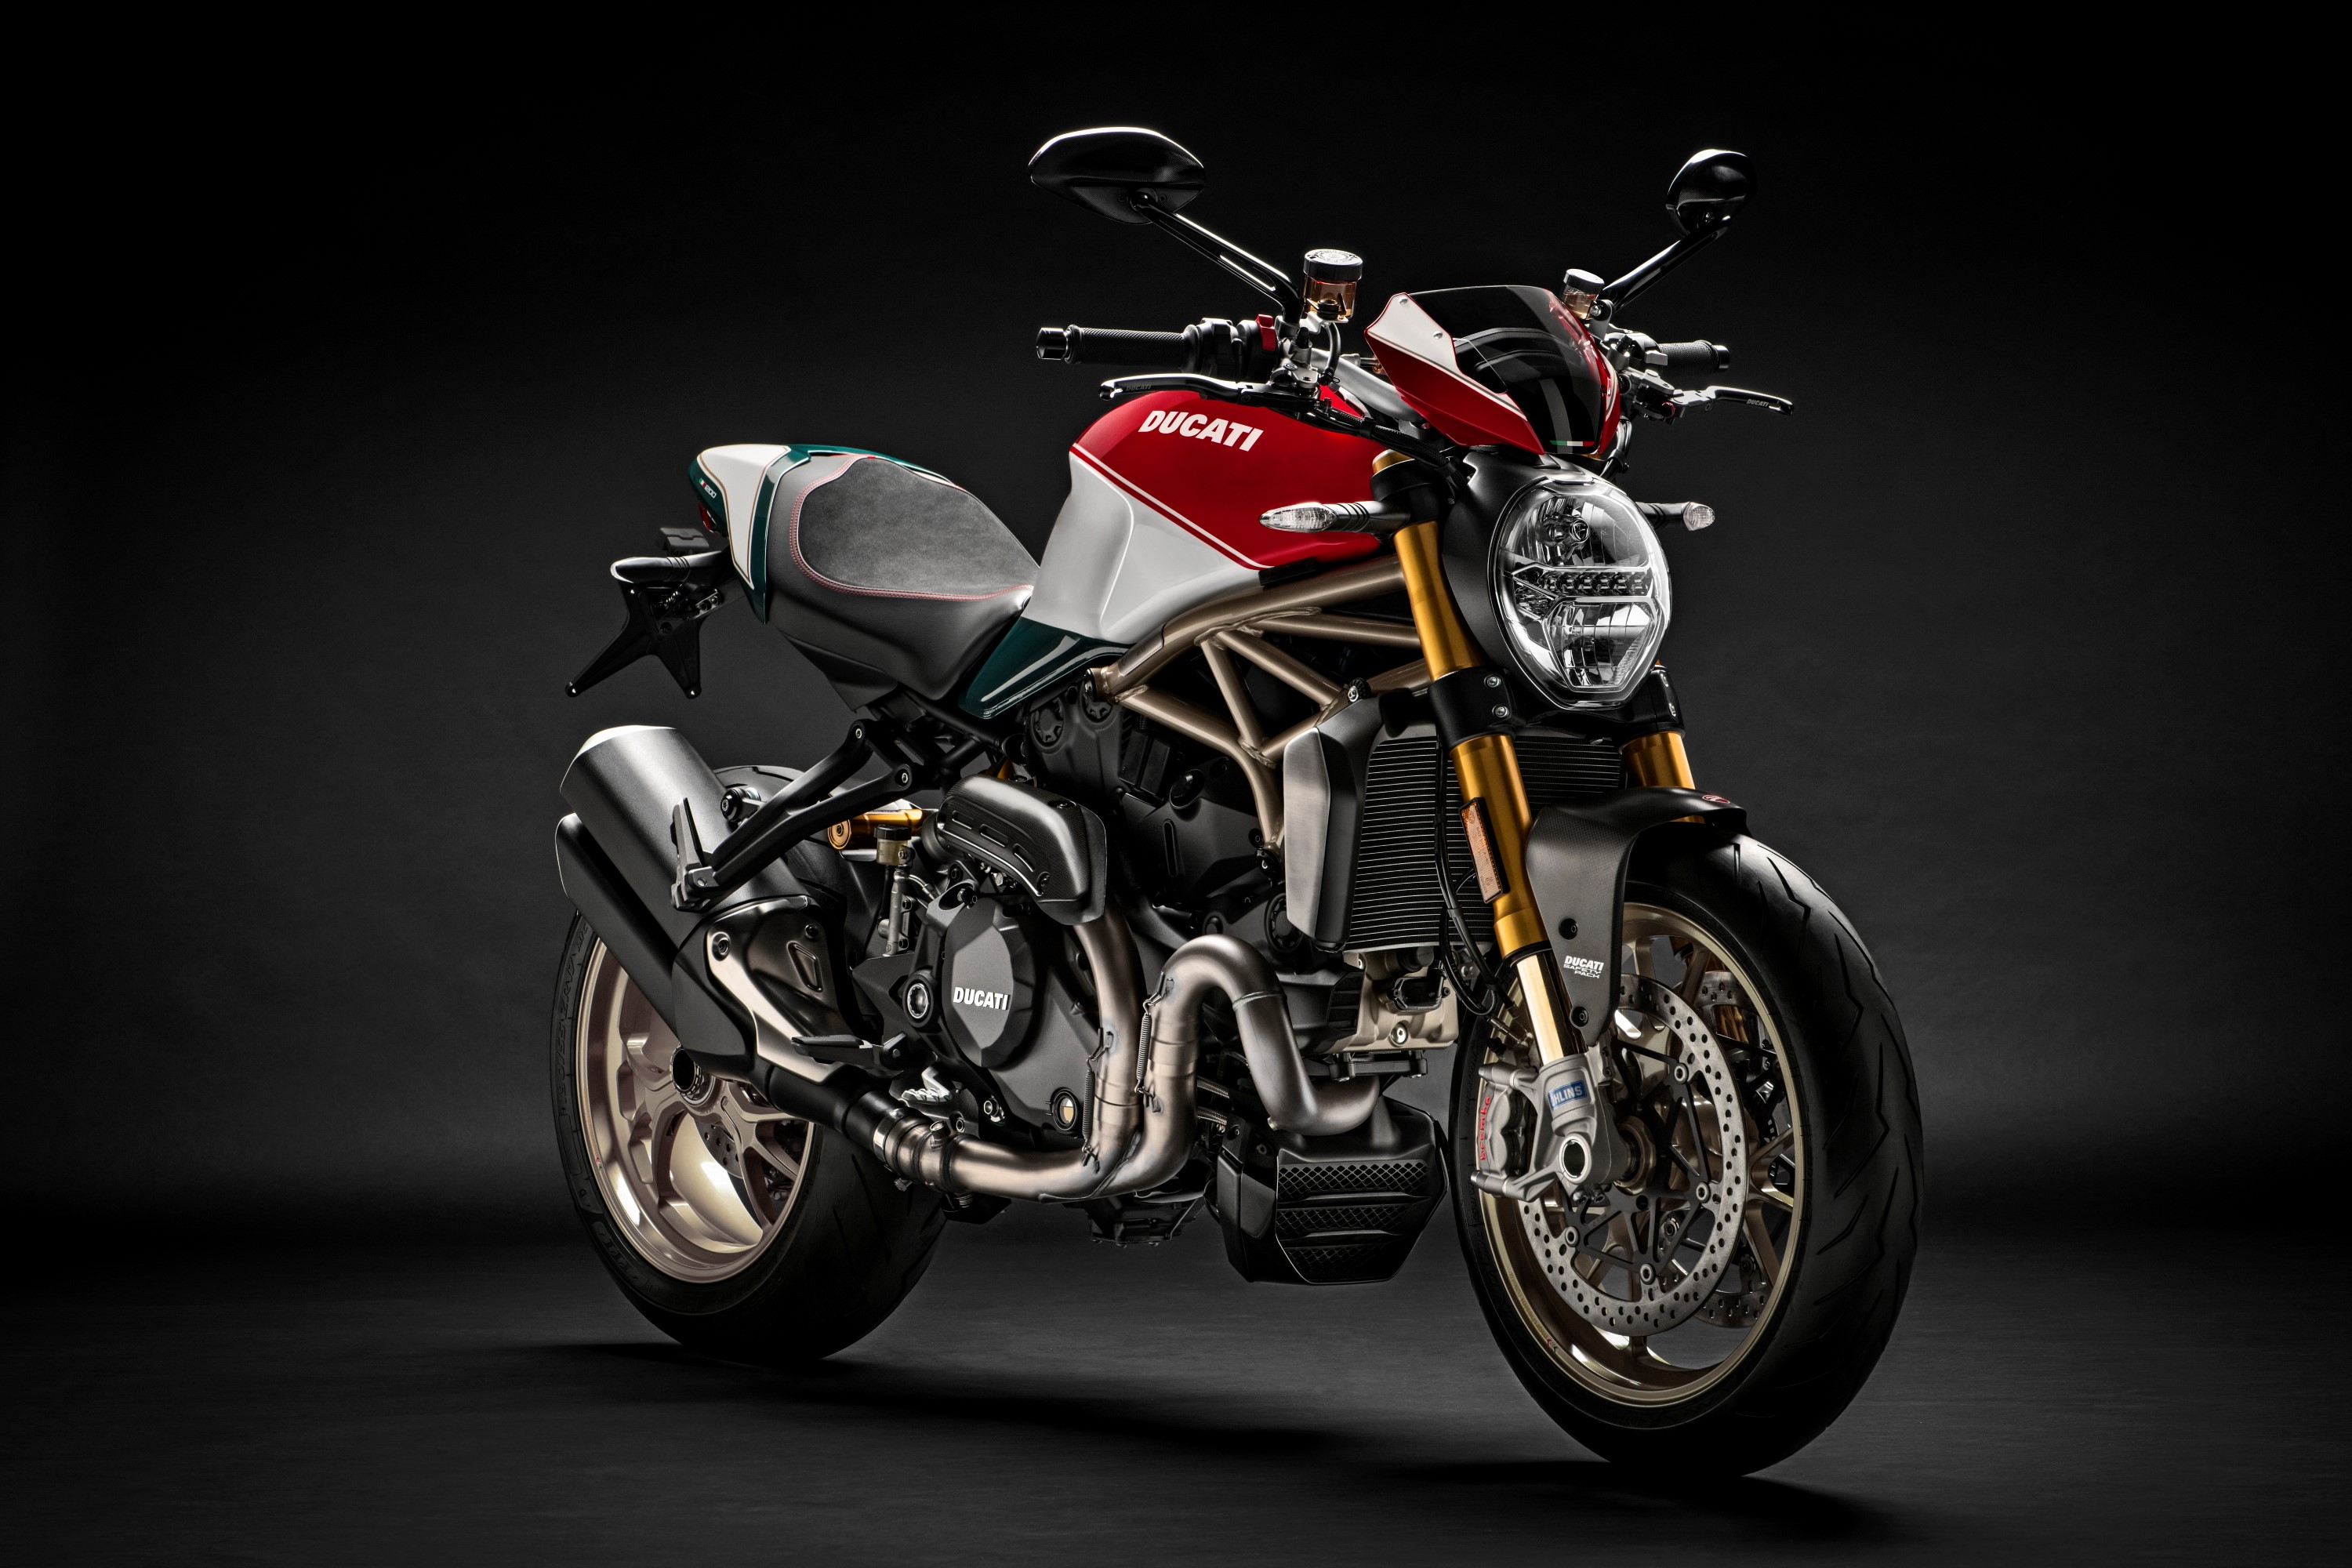 Ducati Asking Hero's Hand For A 300cc Manufacturing Partner